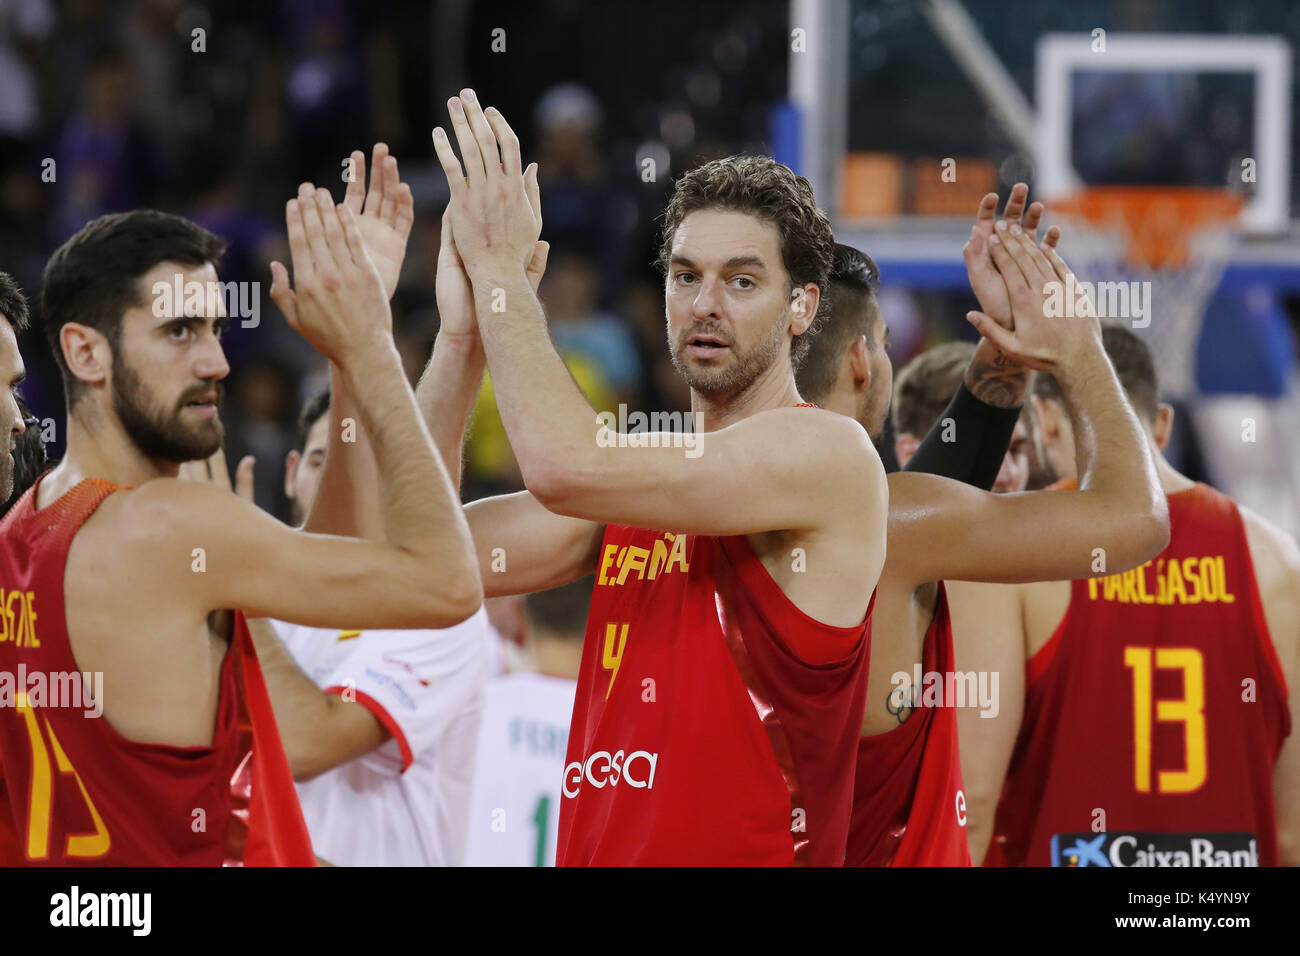 d049c30e680 Spanish National basketball team players Pau Gasol (C) and Joan Sastre (L)  at the end of the Eurobasket 2017 match between Spain and Hungary, in Cluj,  ...